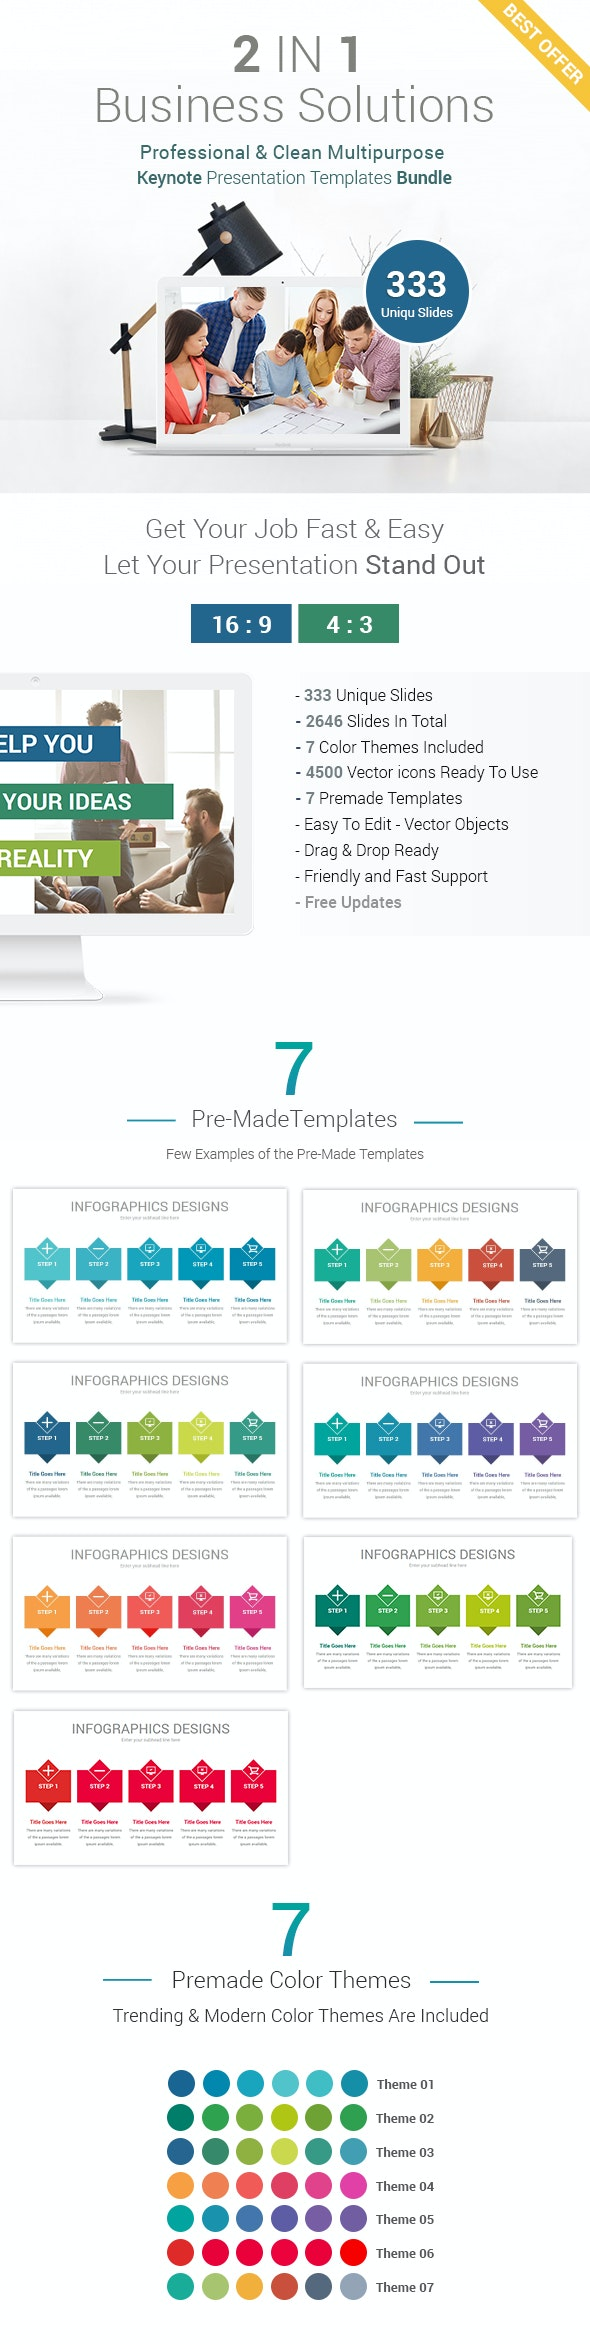 Business Solutions - 2 In 1 Keynote Presentation Template Bundle - Business Keynote Templates